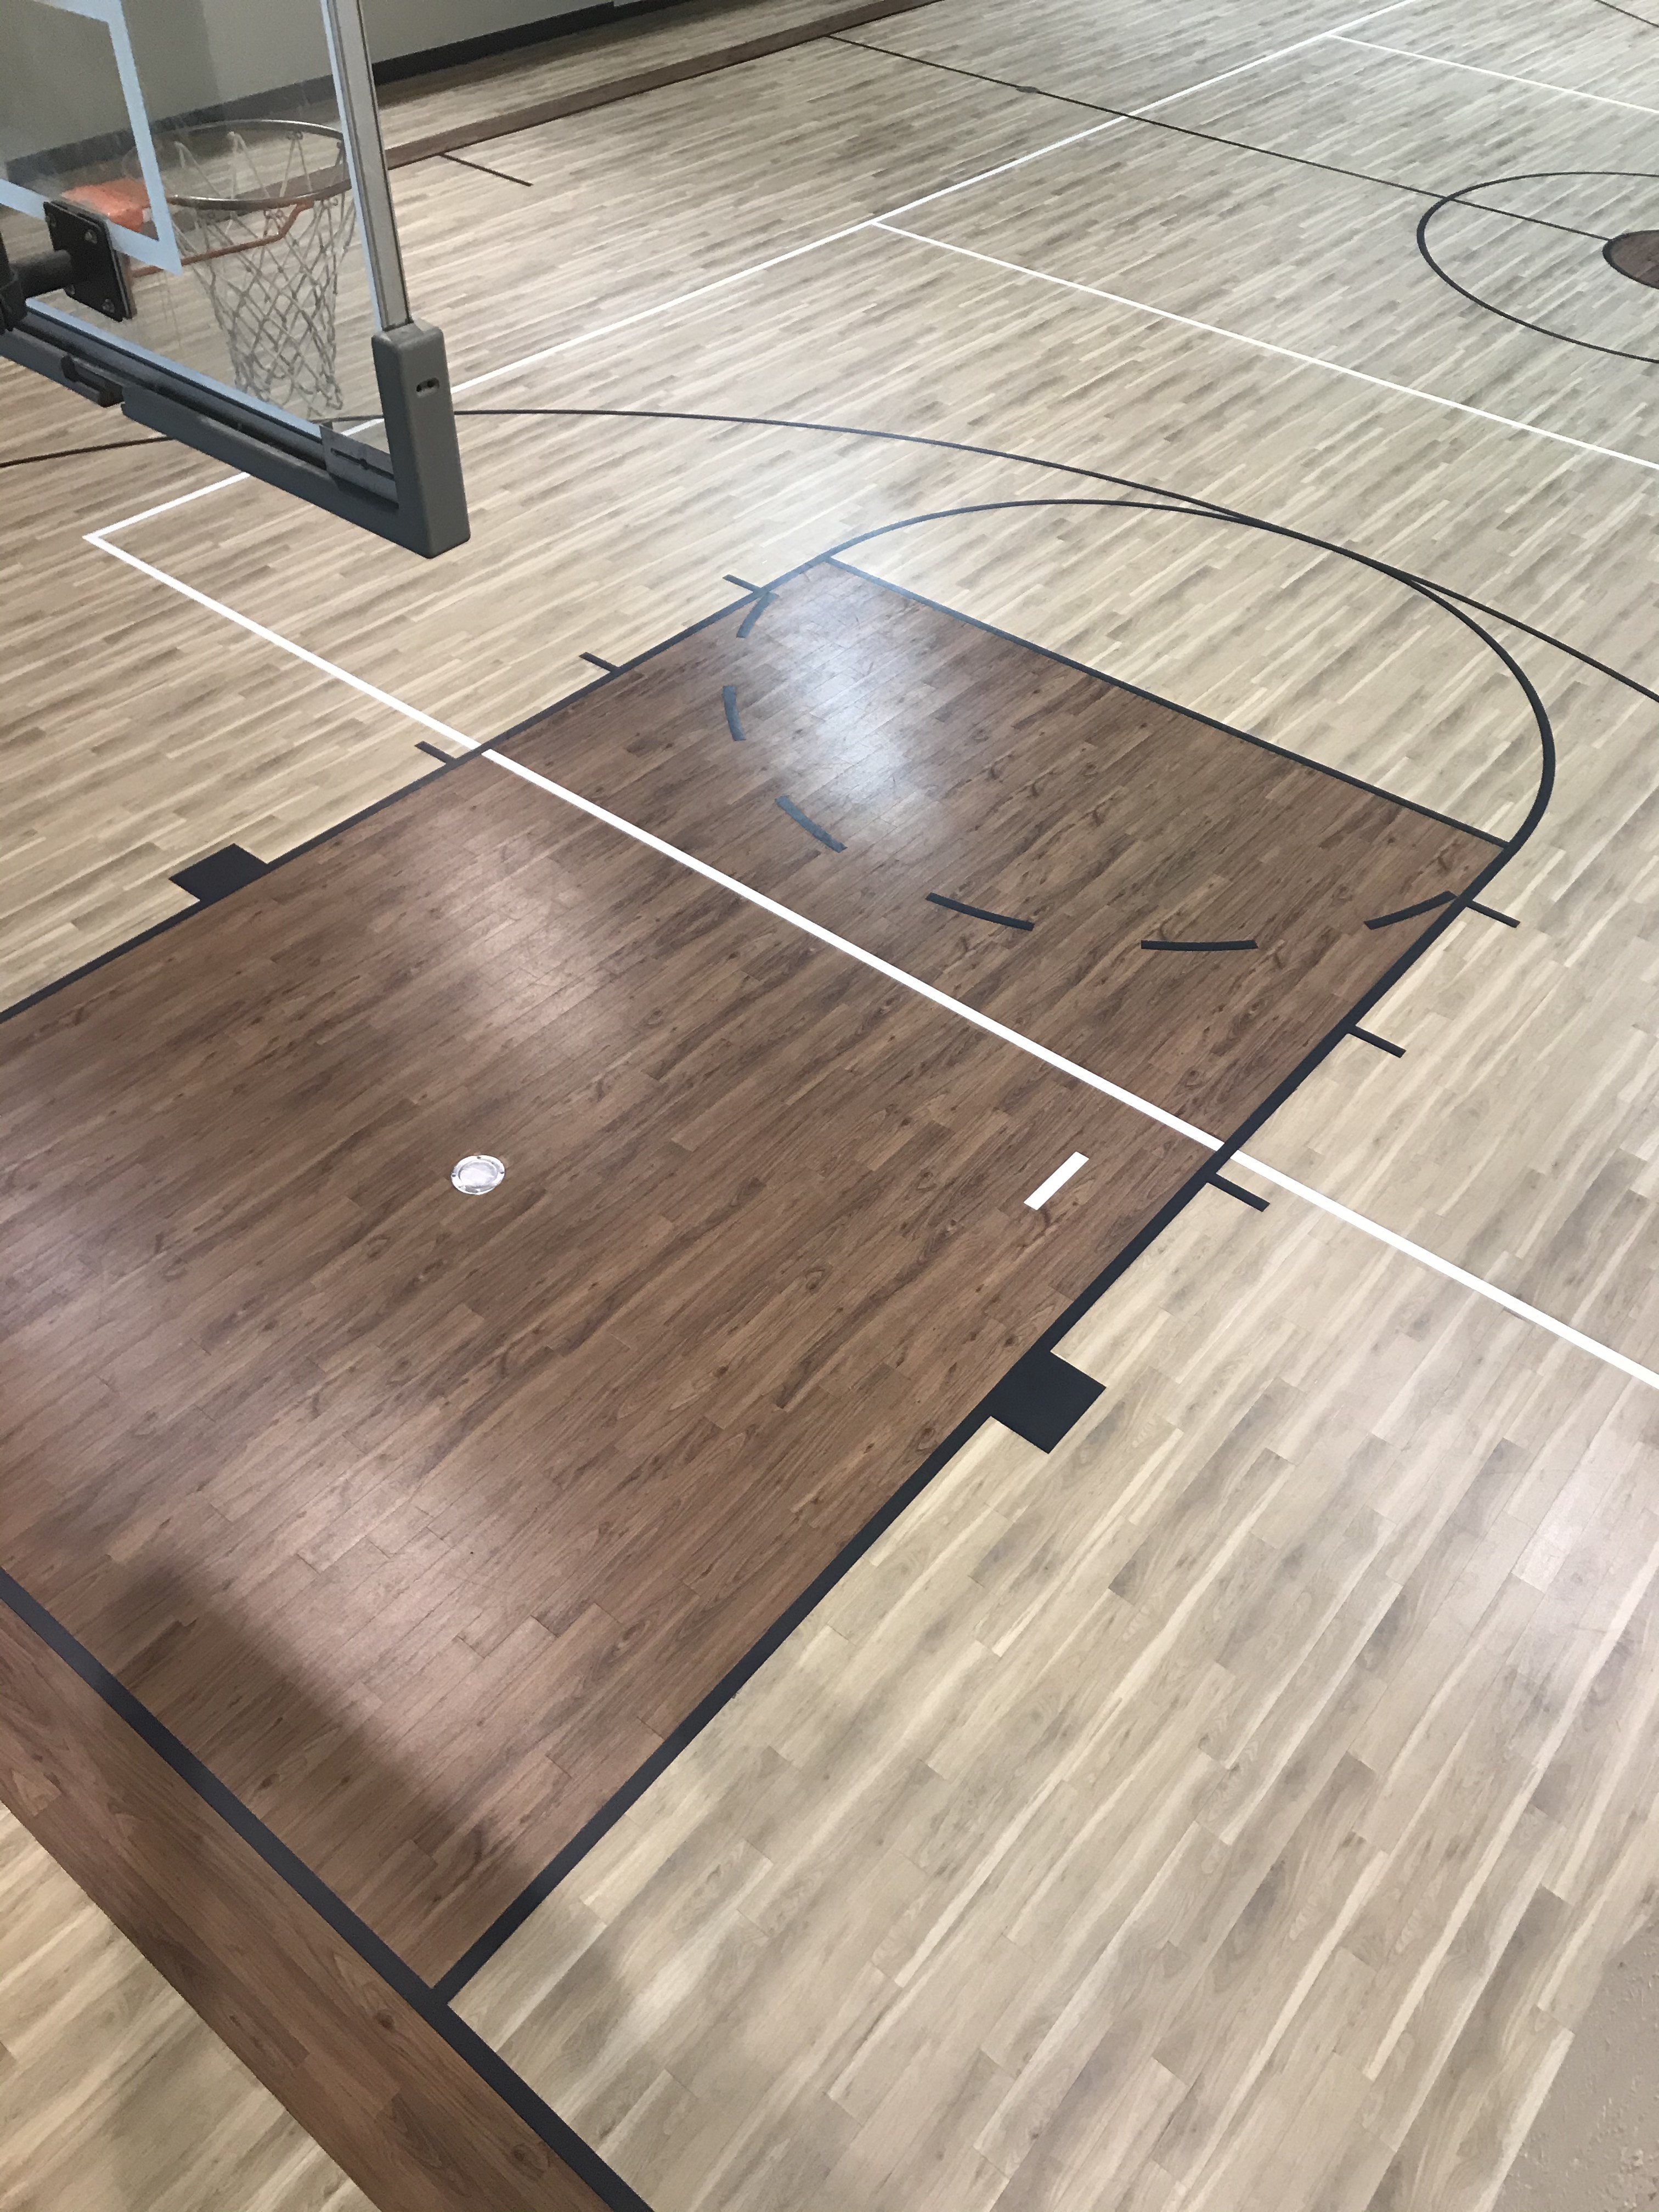 What Is The Best Flooring For A Basketball Court